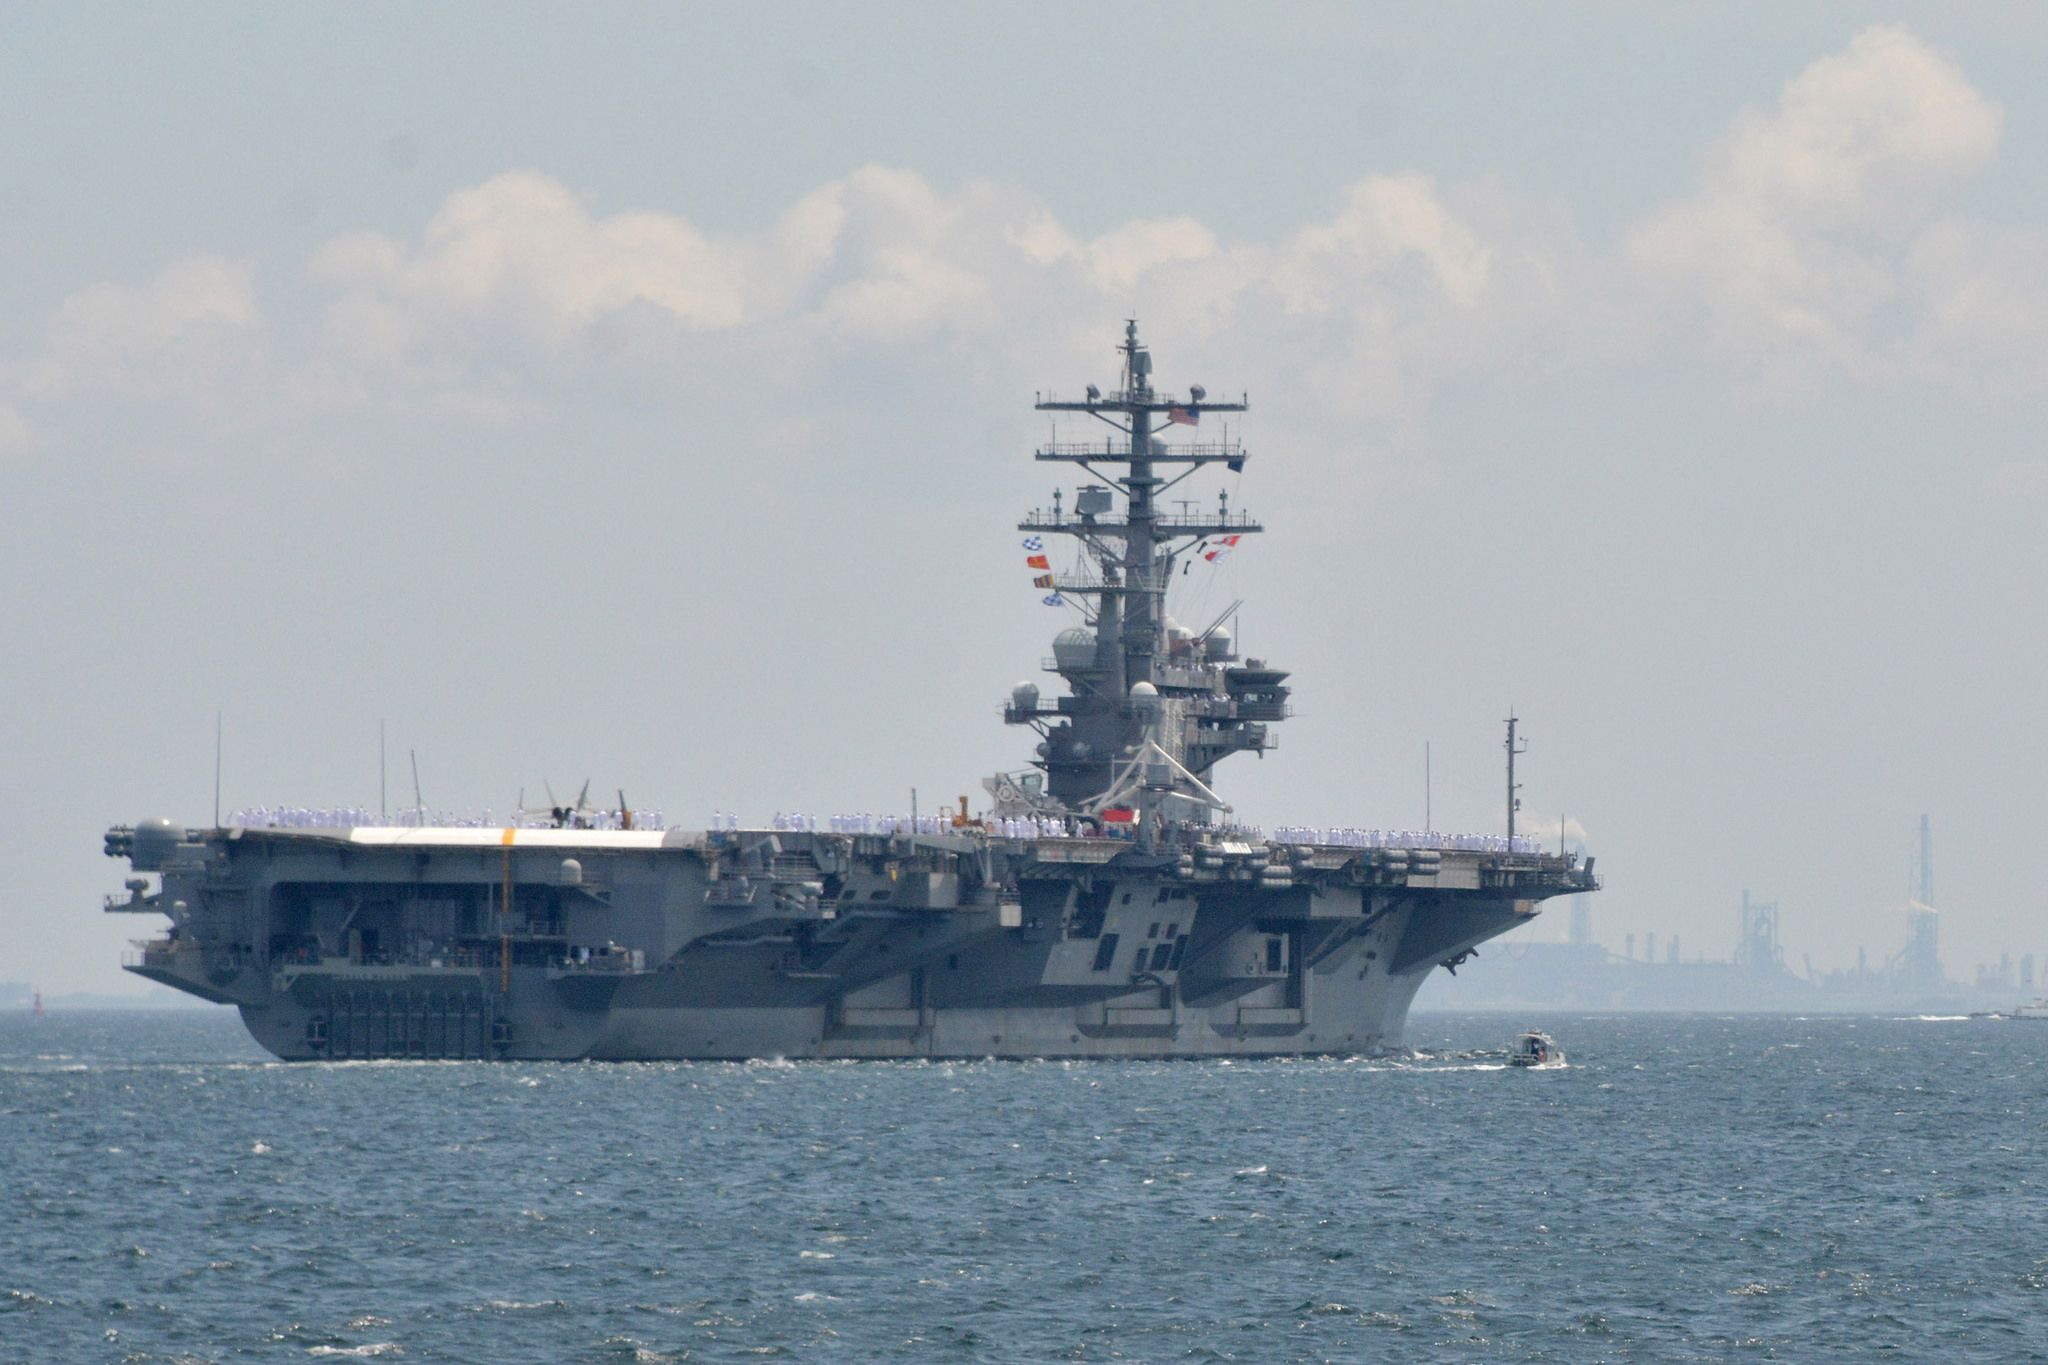 https://flic.kr/p/HN81kn | 160604-N-XN177-283 | YOKOSUKA, Japan (June 4, 2016) The U.S. Navy's only forward-deployed aircraft carrier USS Ronald Reagan (CVN 76) departs Fleet Activities (FLEACT) Yokosuka for its 2016 patrol. Ronald Reagan and its embarked air wing Carrier Air Wing (CVW) 5 provide a combat-ready force that protects and defends the collective maritime interests of the U.S. and its allies and partners in the Indo-Asia-Pacific region. (U.S. Navy photo by Mass Communication…